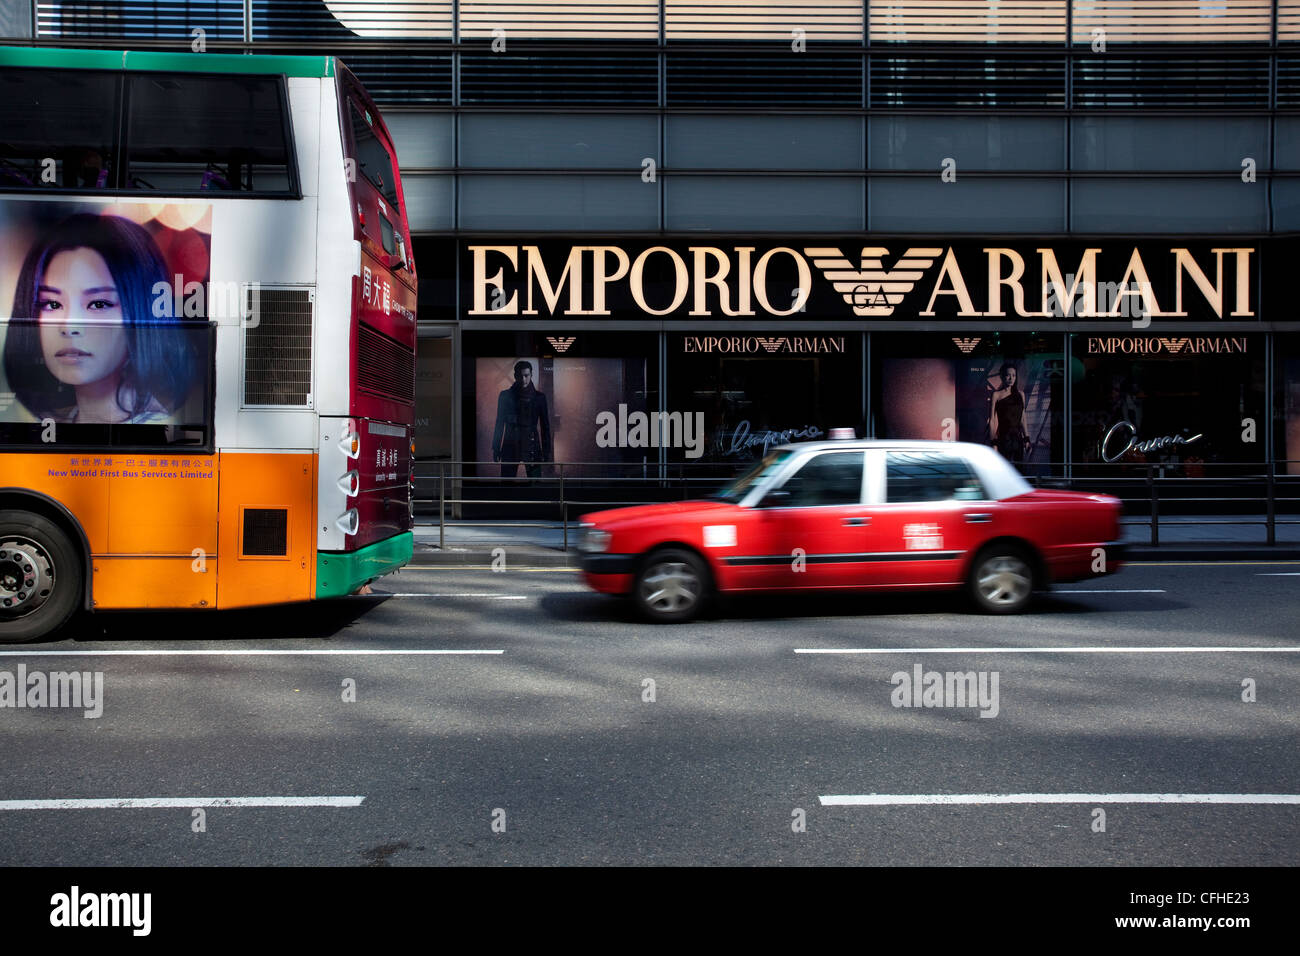 Bus and red taxi outside Emporio Armani store in Hong Kong - Stock Image